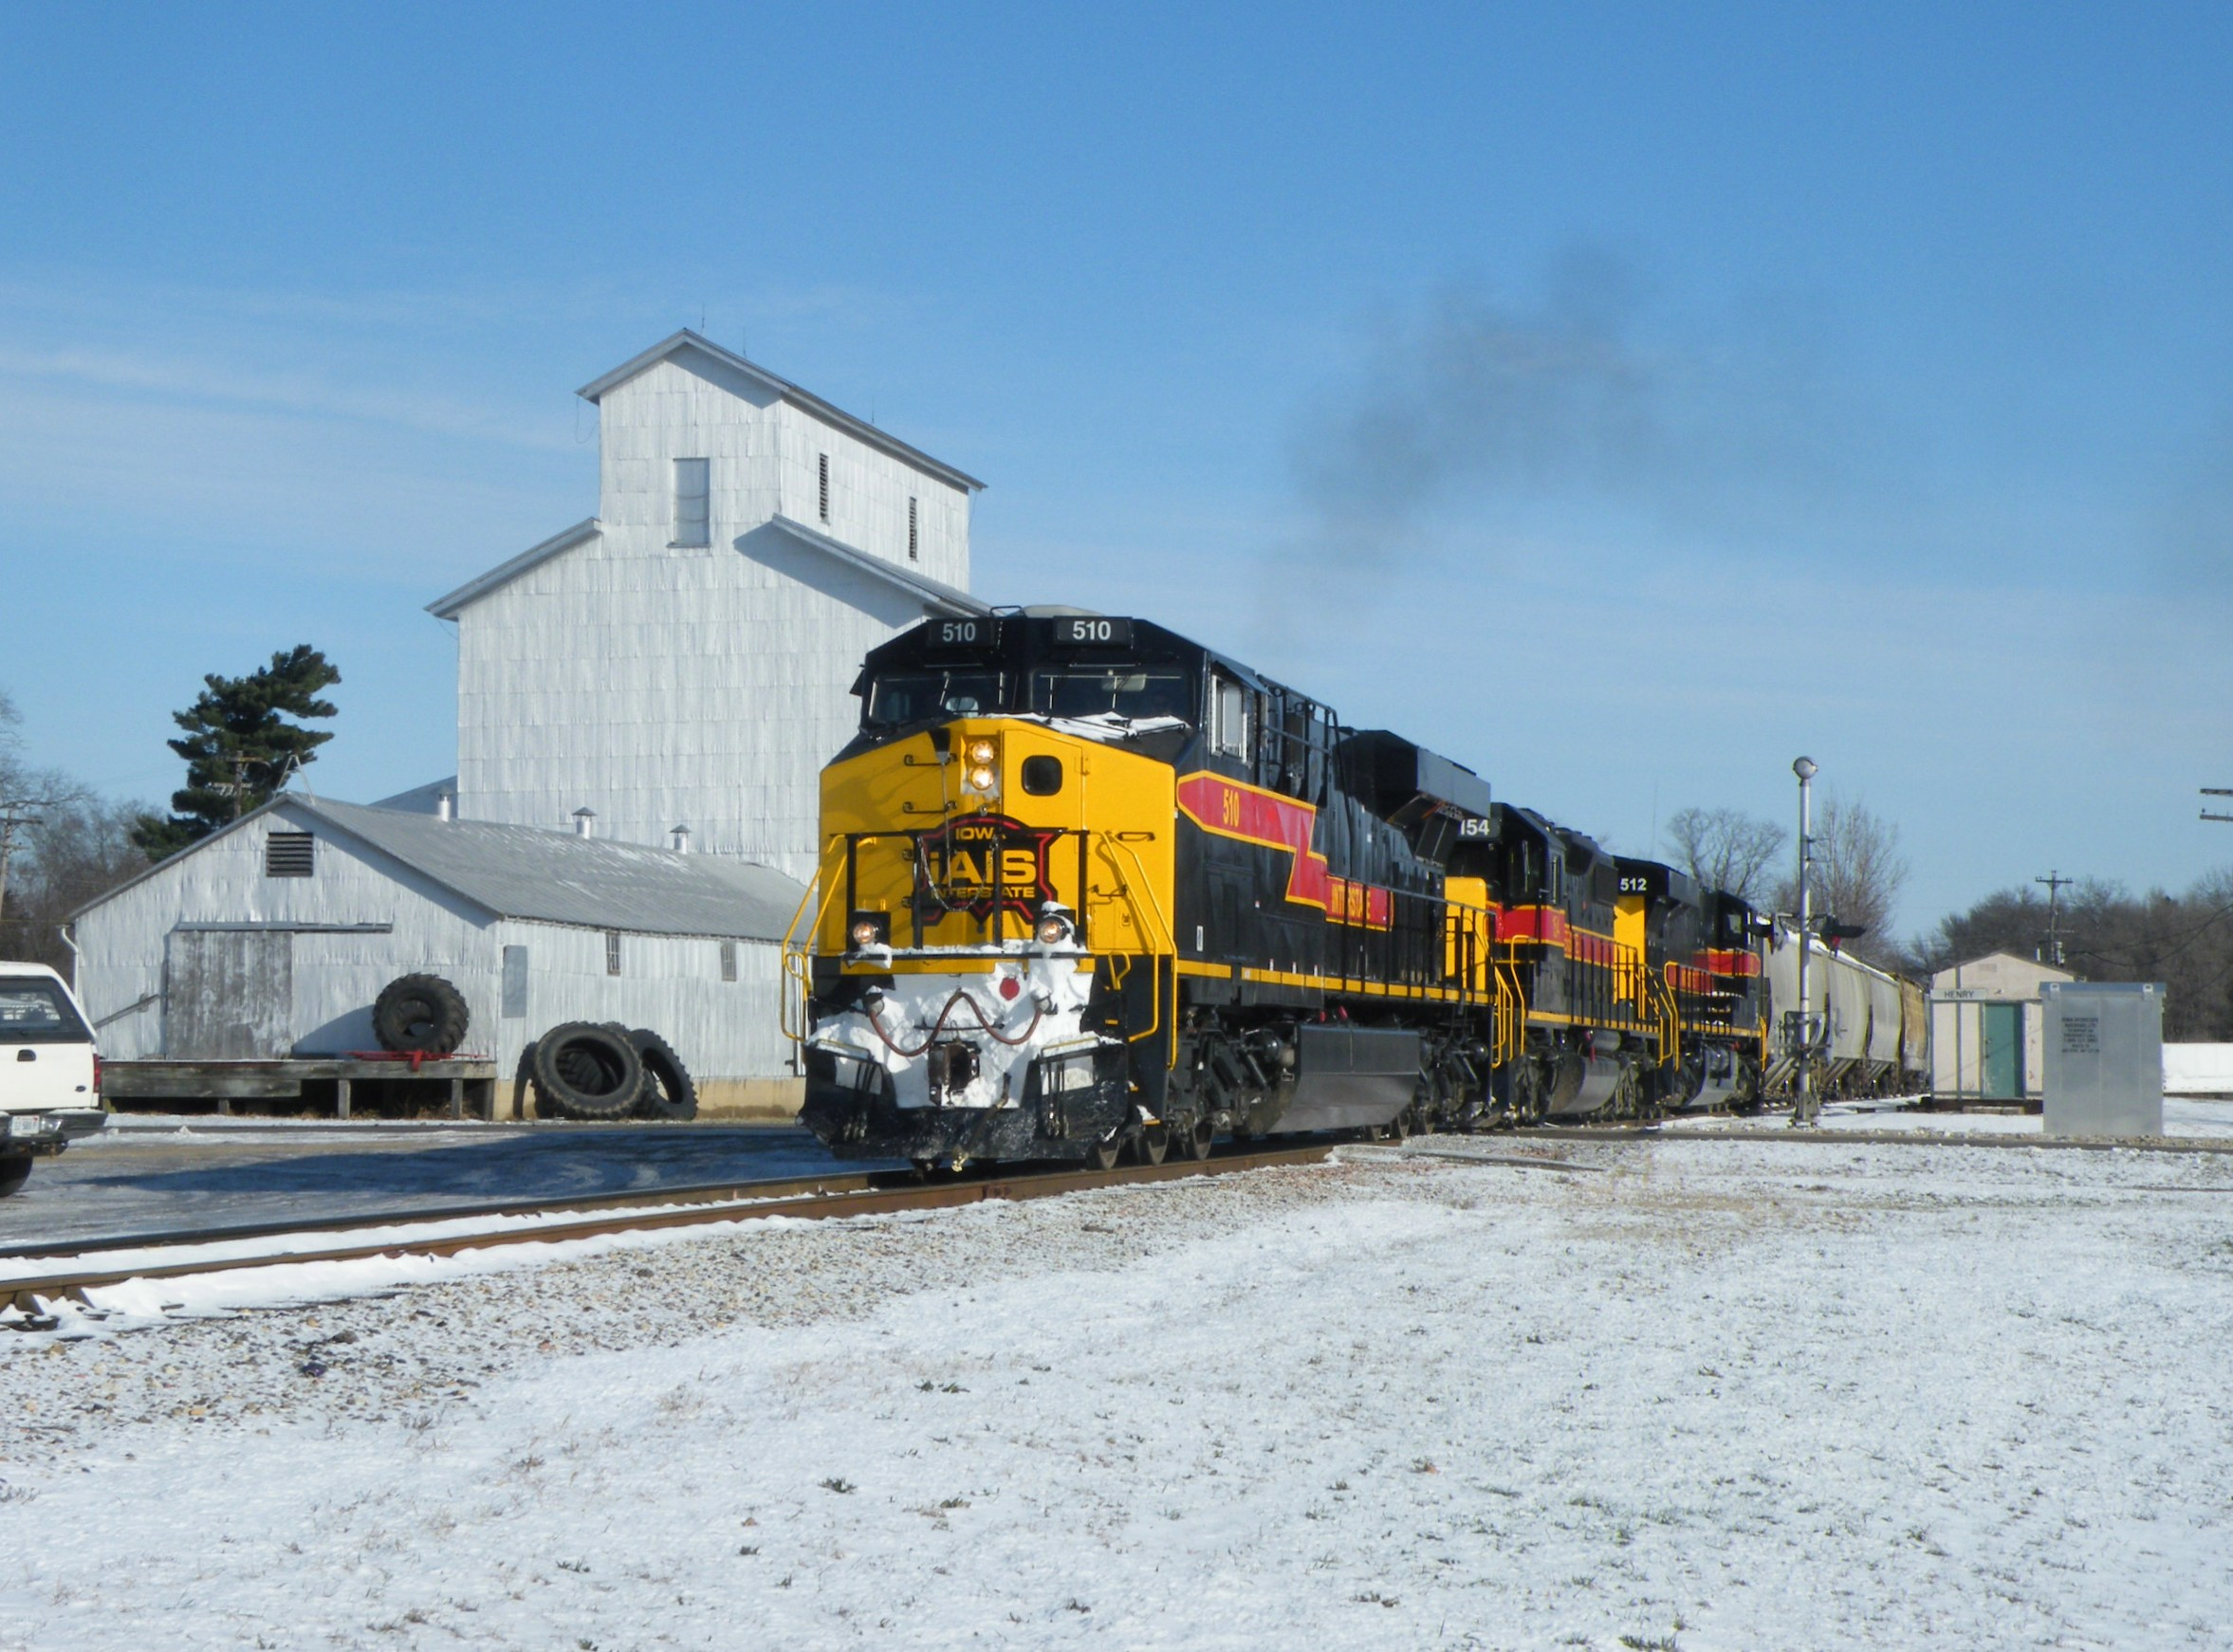 510, 154, and 512 get back underway after a short pause in Henry.